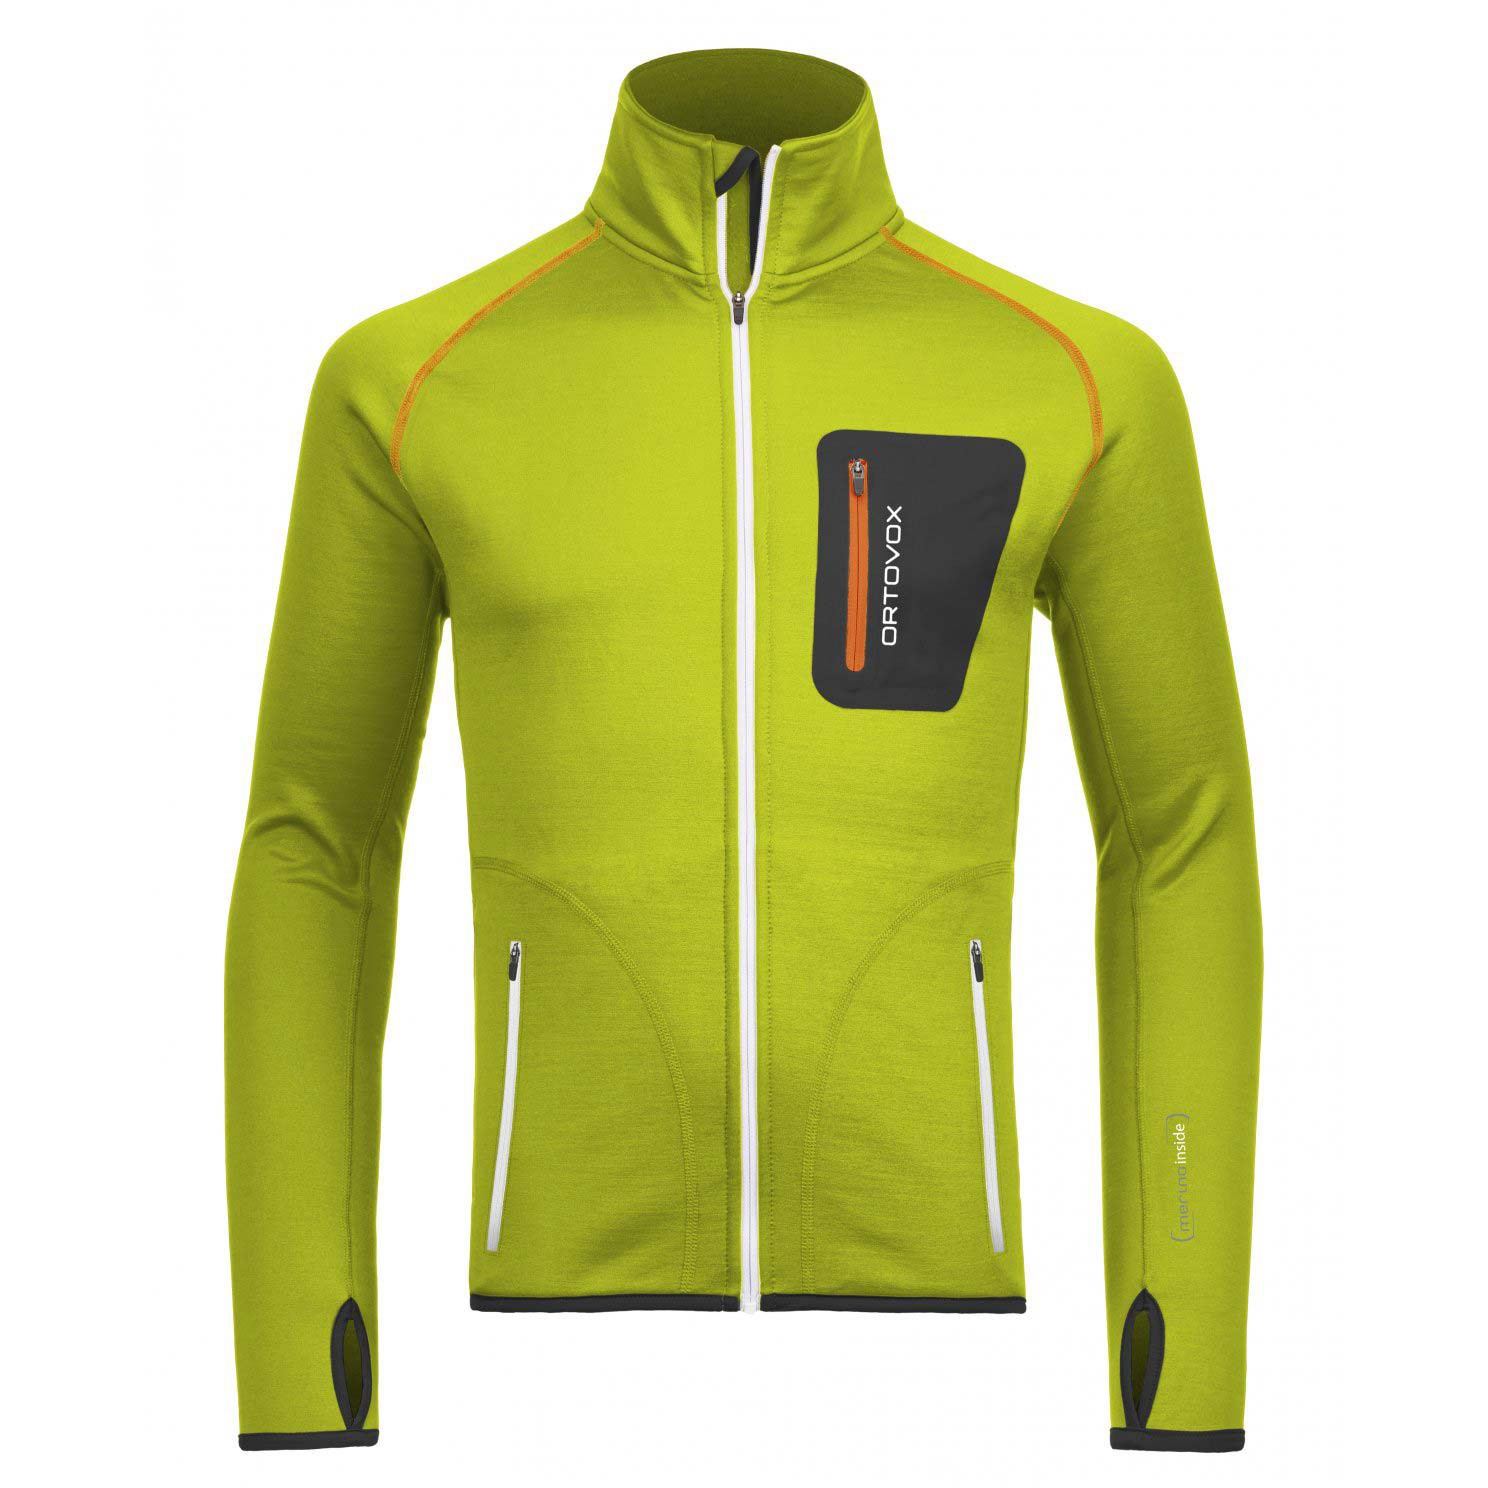 Ortovox Merino Fleece Jacket Happy Green Snowboard Zezula